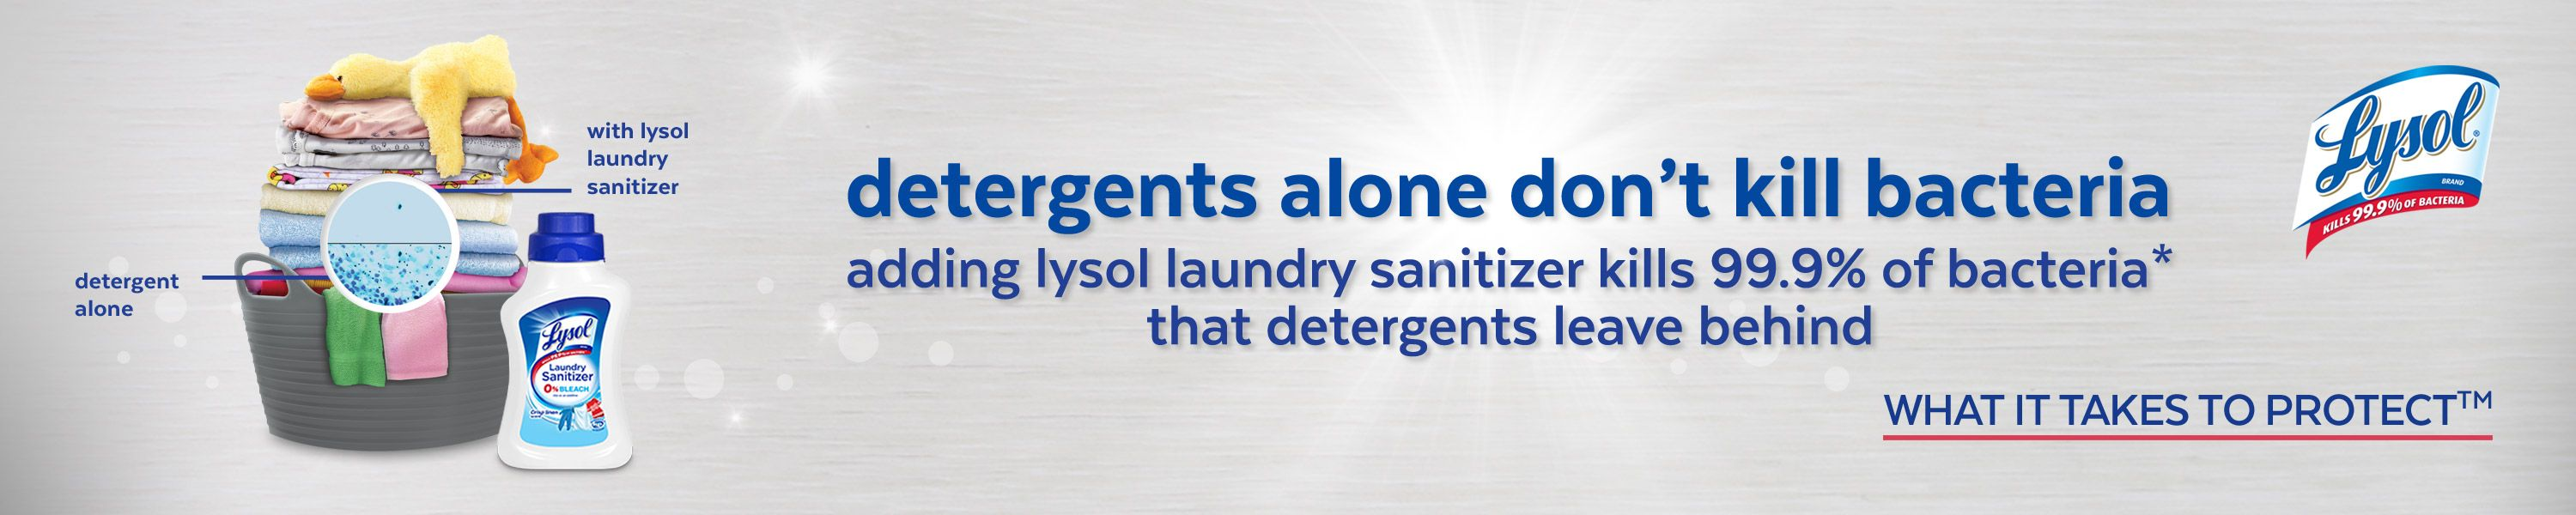 Lysol Laundry Sanitizer Cleaning hacks, Diy cleaning